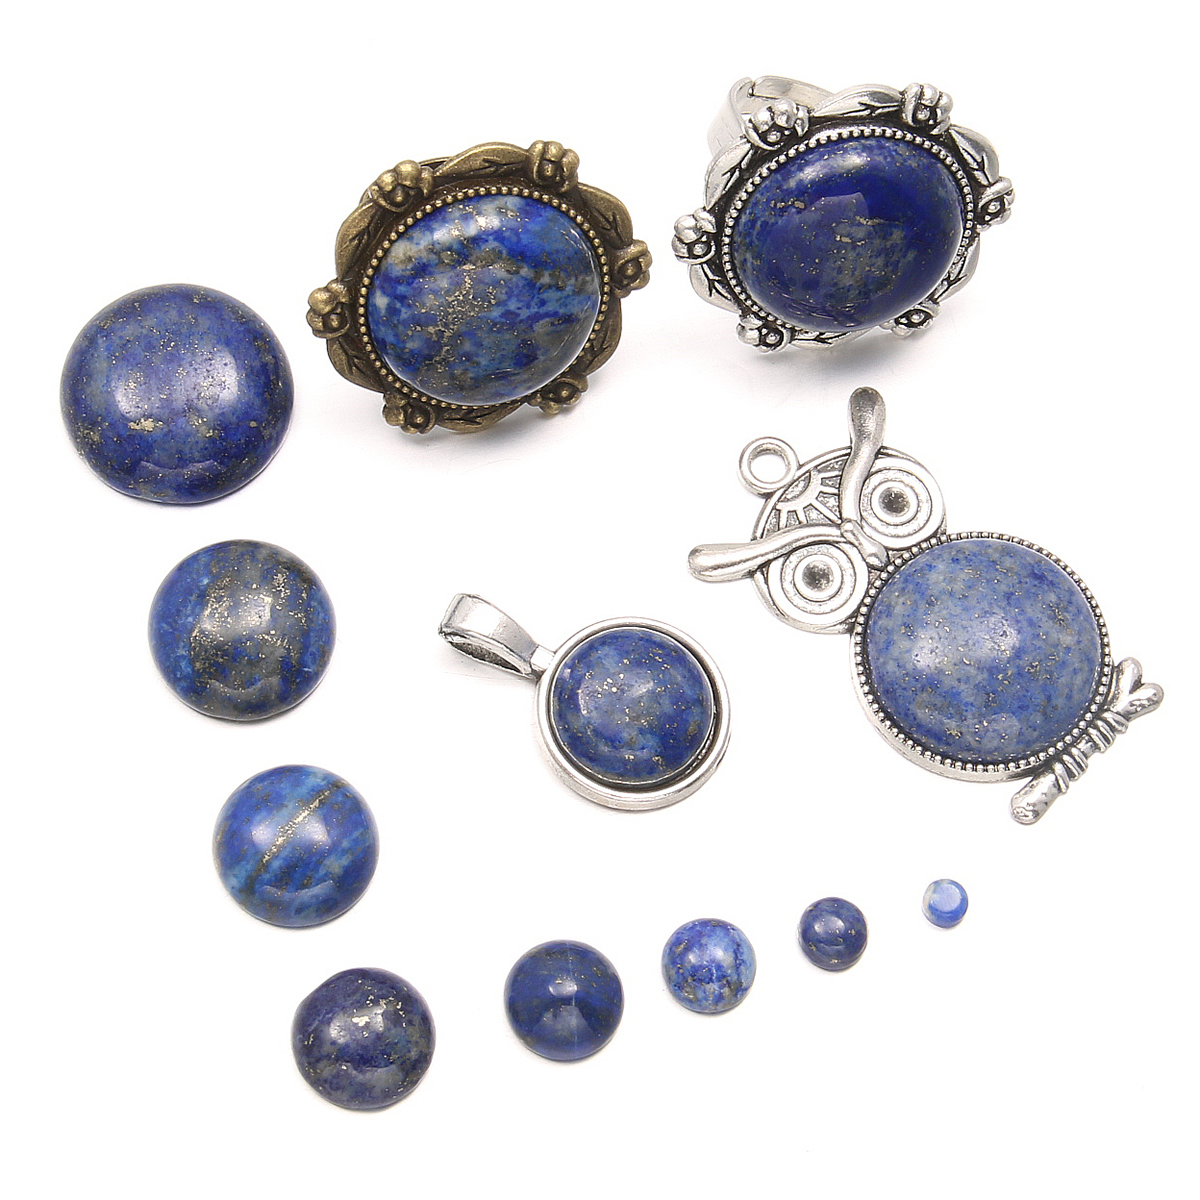 Natural Stones Lapis Lazuli Stone Cabochon 10 12 14 16 18 Mm Round No Hole Beads For Making Jewelry DIY Accessories Loose Beads